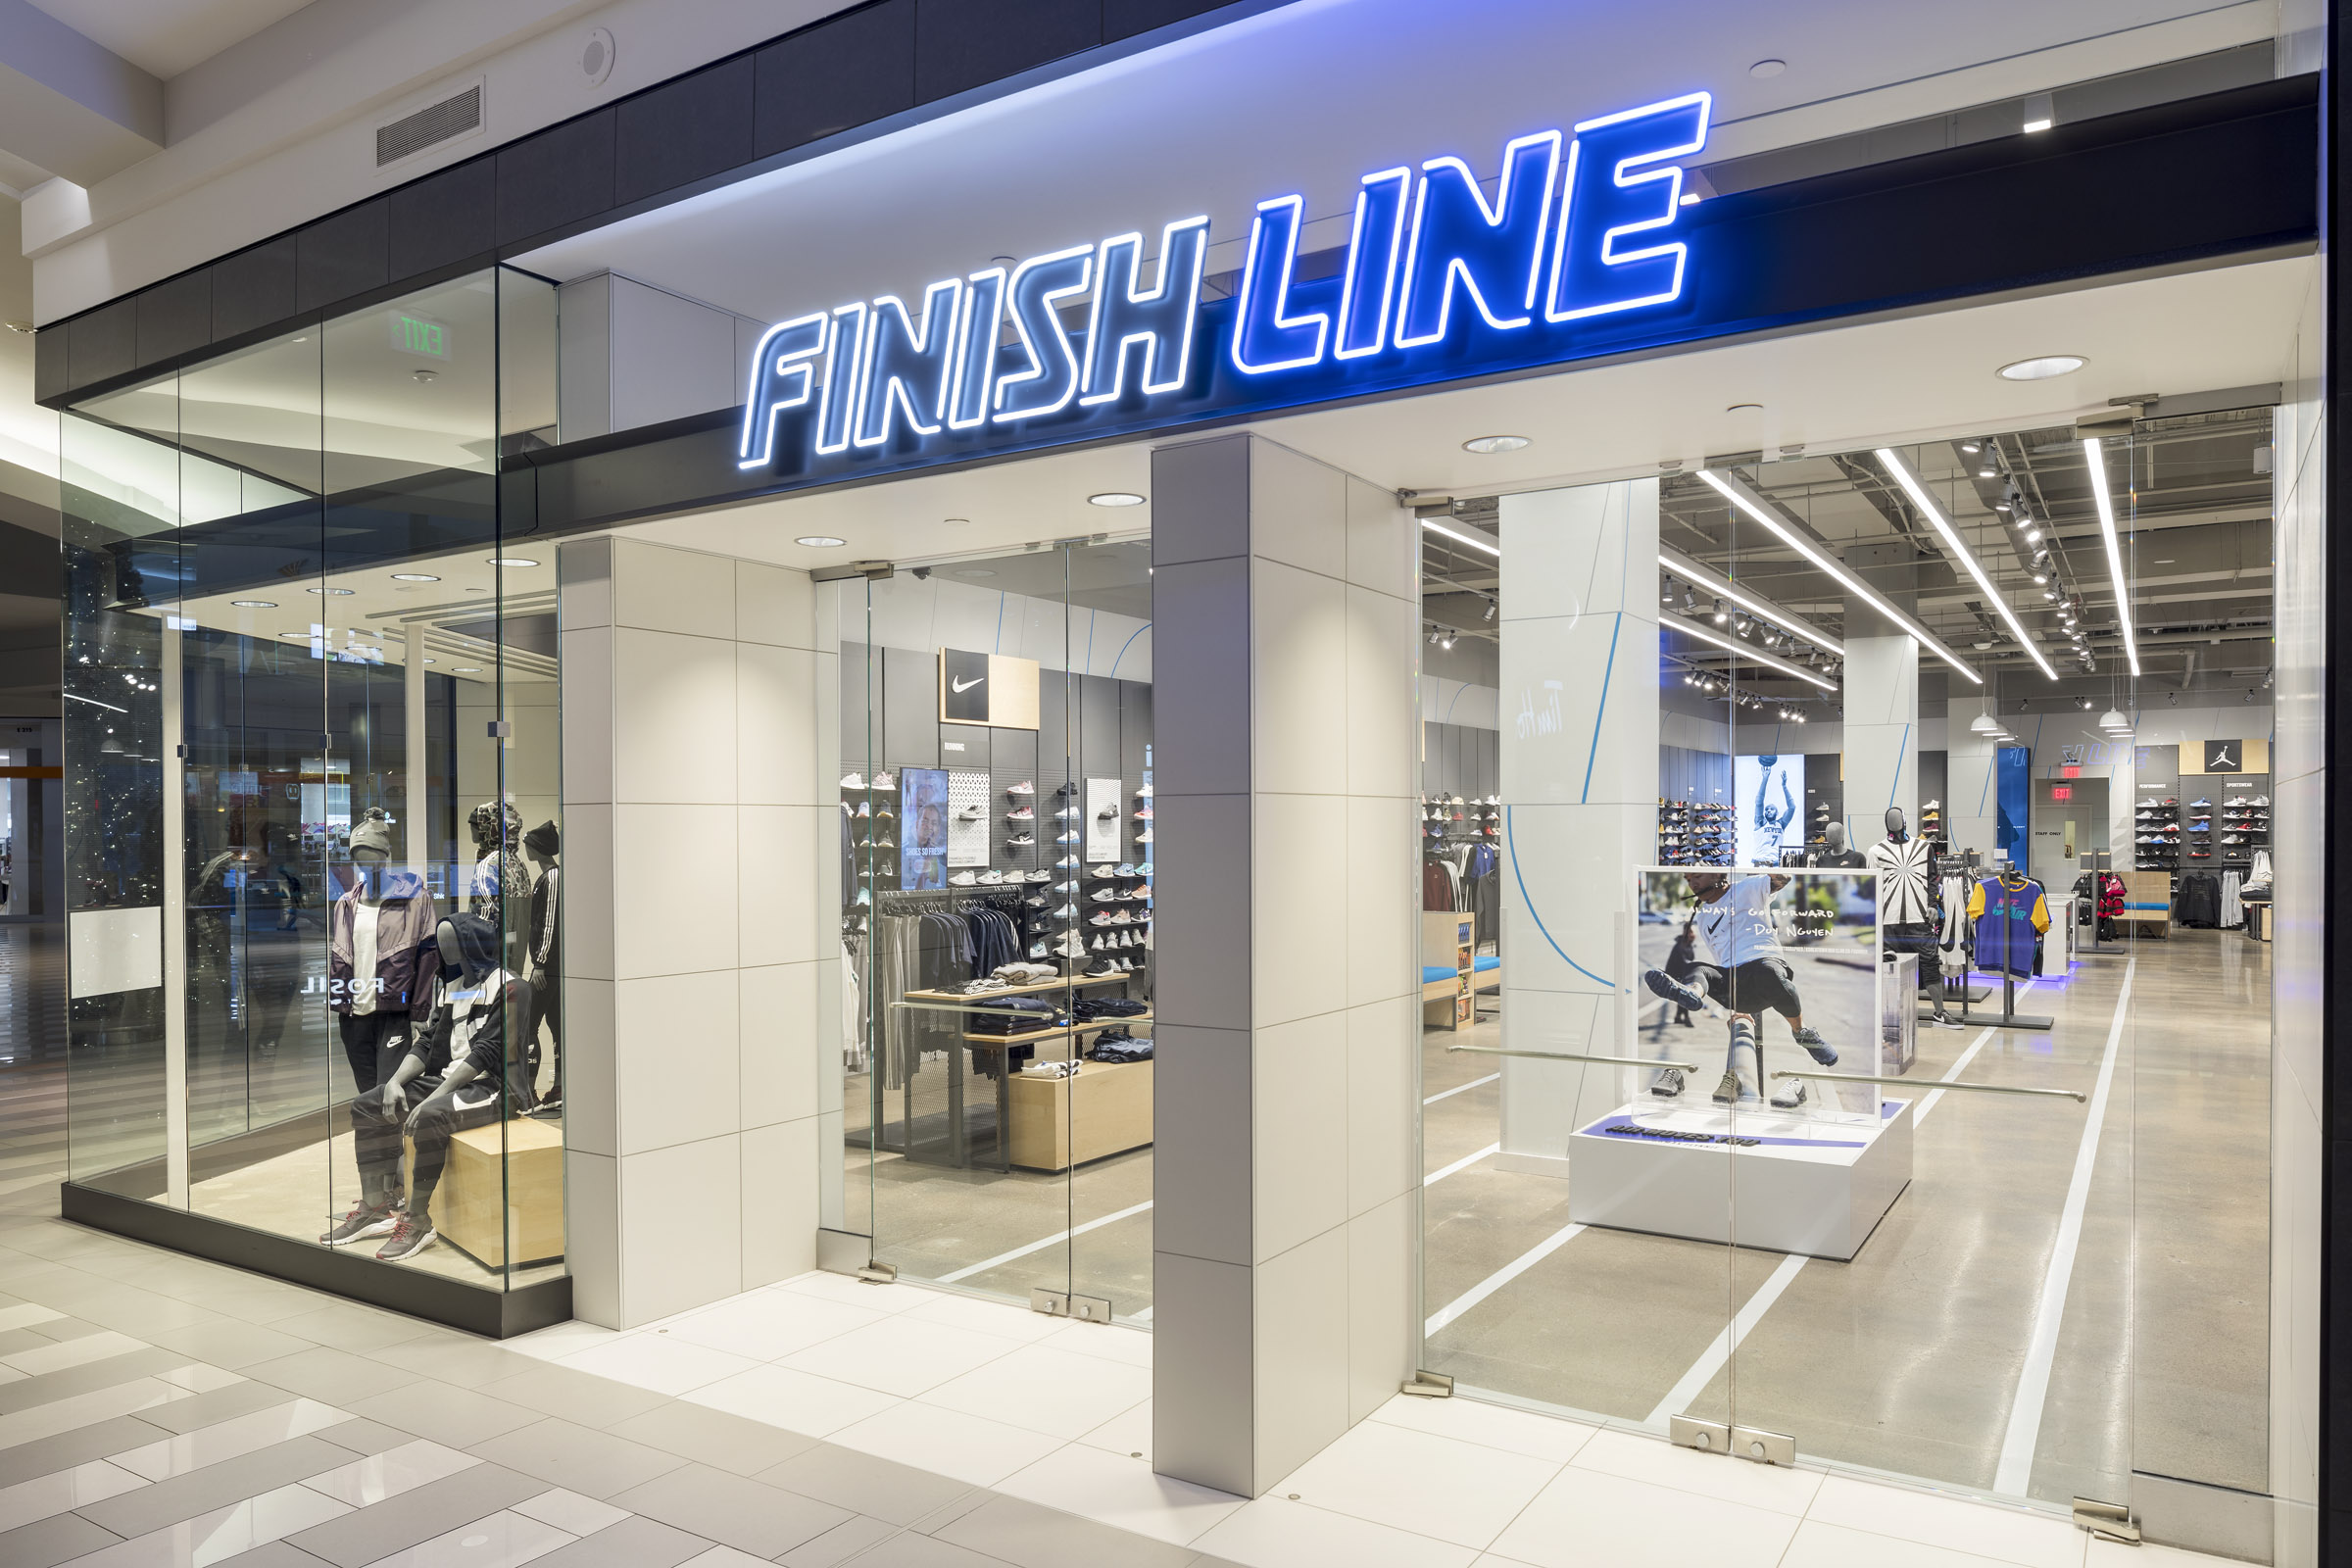 finishline03.jpg